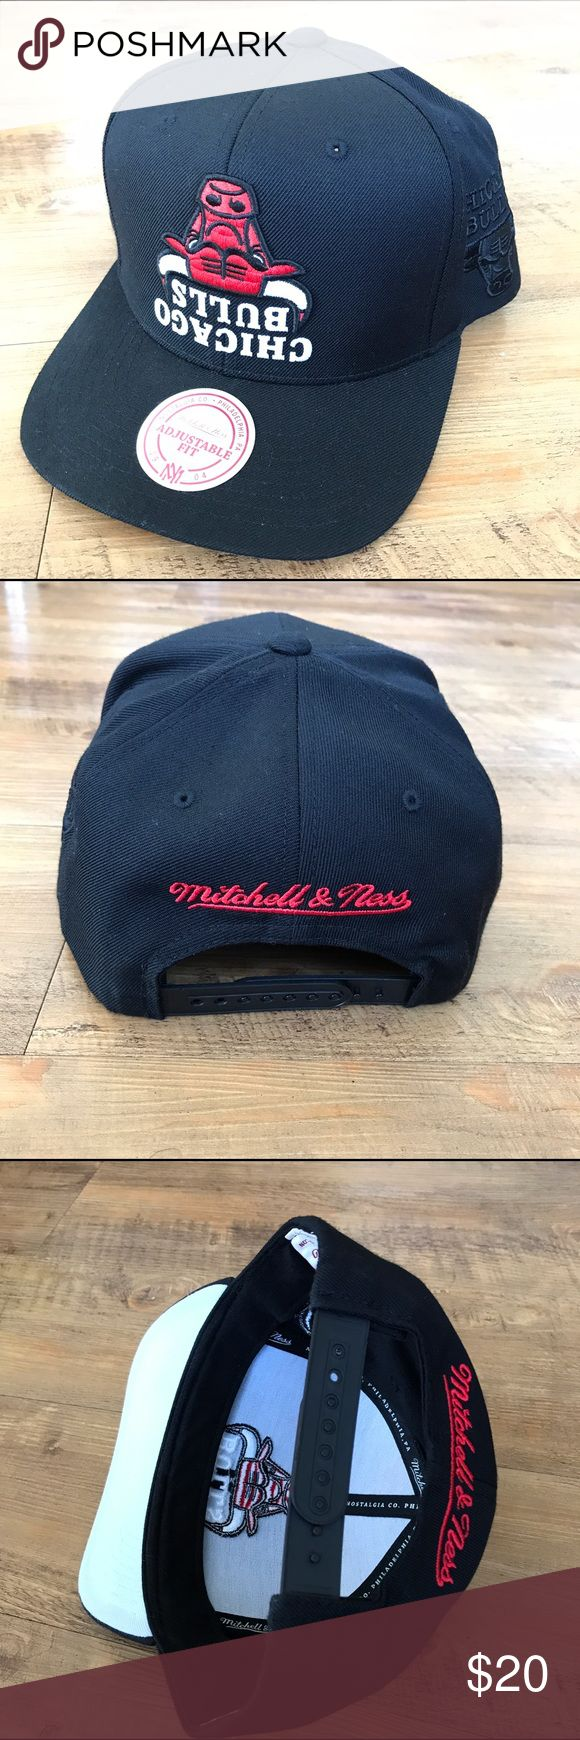 Mitchell & Ness x HoF NBA Snapback -- CHI Bulls Black/Red -- M&N x Hall of Fame collaboration Upside-down Snapback Hat -- Chicago Bulls -- Gently Used, Excellent Condition -- $20 Ea. / 3 for $40 / 5 for $50 - **CHOOSE WHAT YOU LIKE! ADD MULTIPLE HATS TO A BUNDLE TO APPLY DISCOUNT!** Mitchell & Ness Accessories Hats